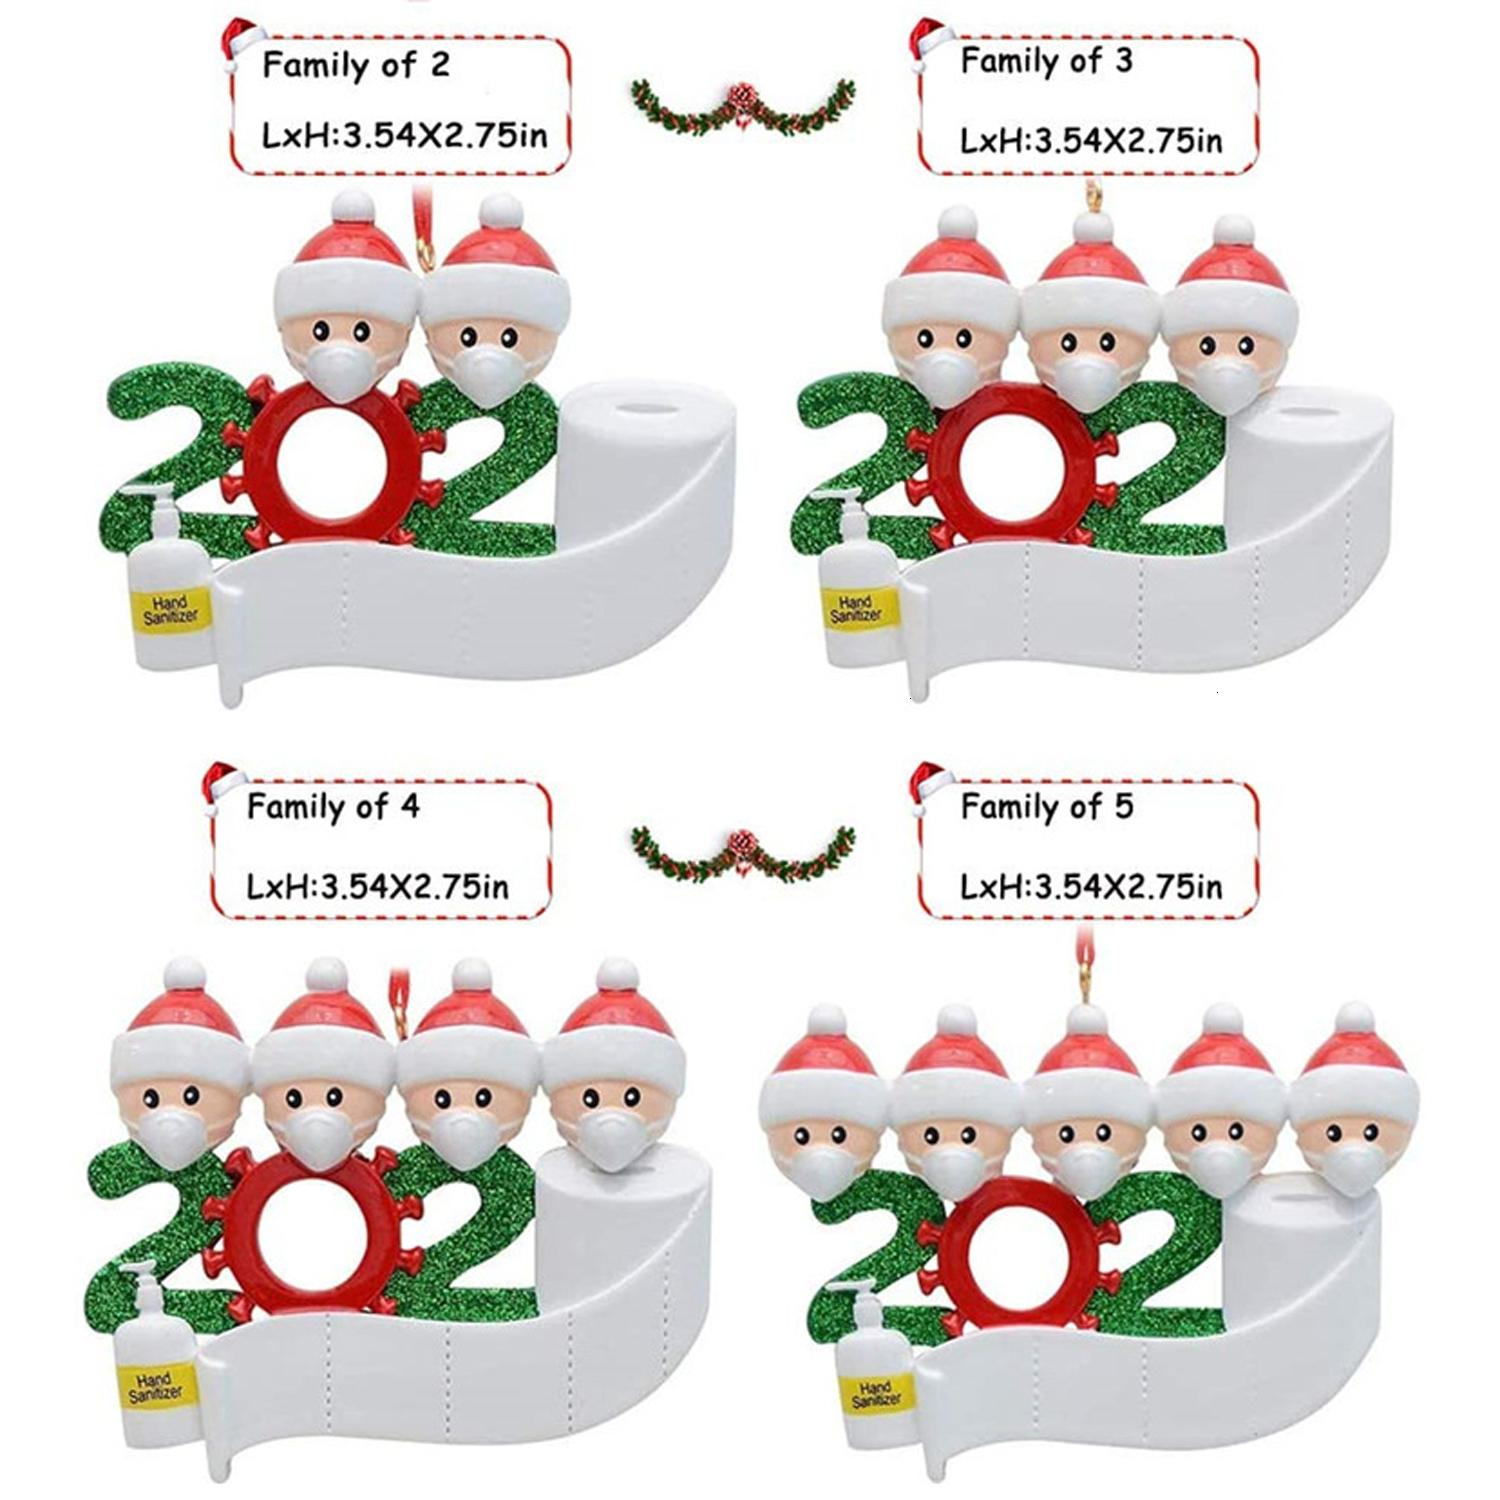 2020 Quarantine Christmas Decoration Birthdays Party Gift Product Personalized Family Of 4 Ornament Pandemic with Face Masks Hand Sanitized